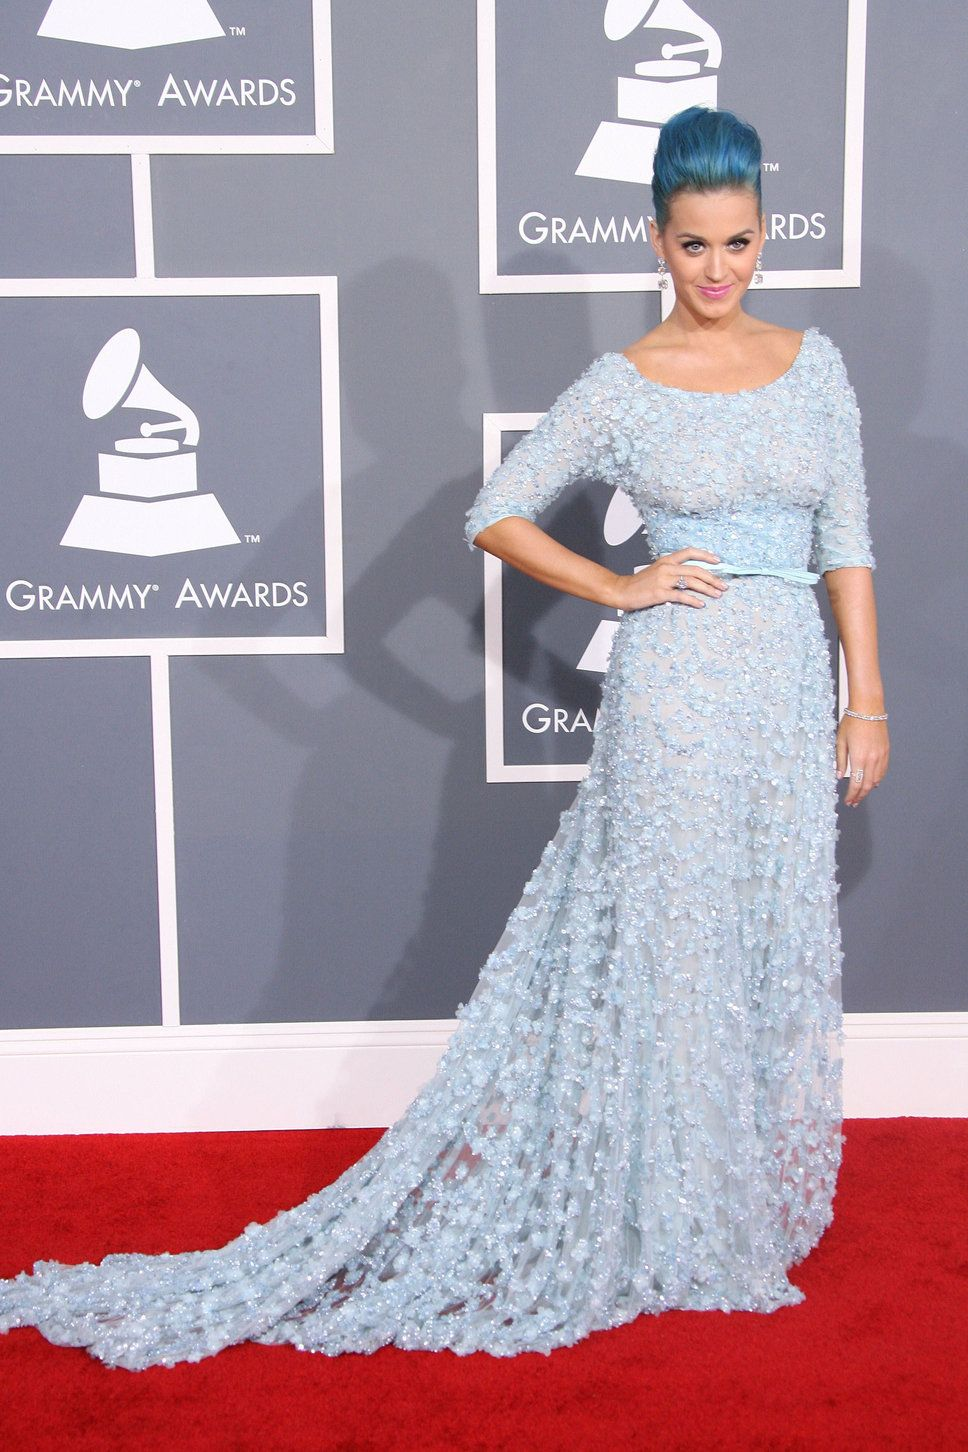 Katy Perry's Blue Sequin Dress